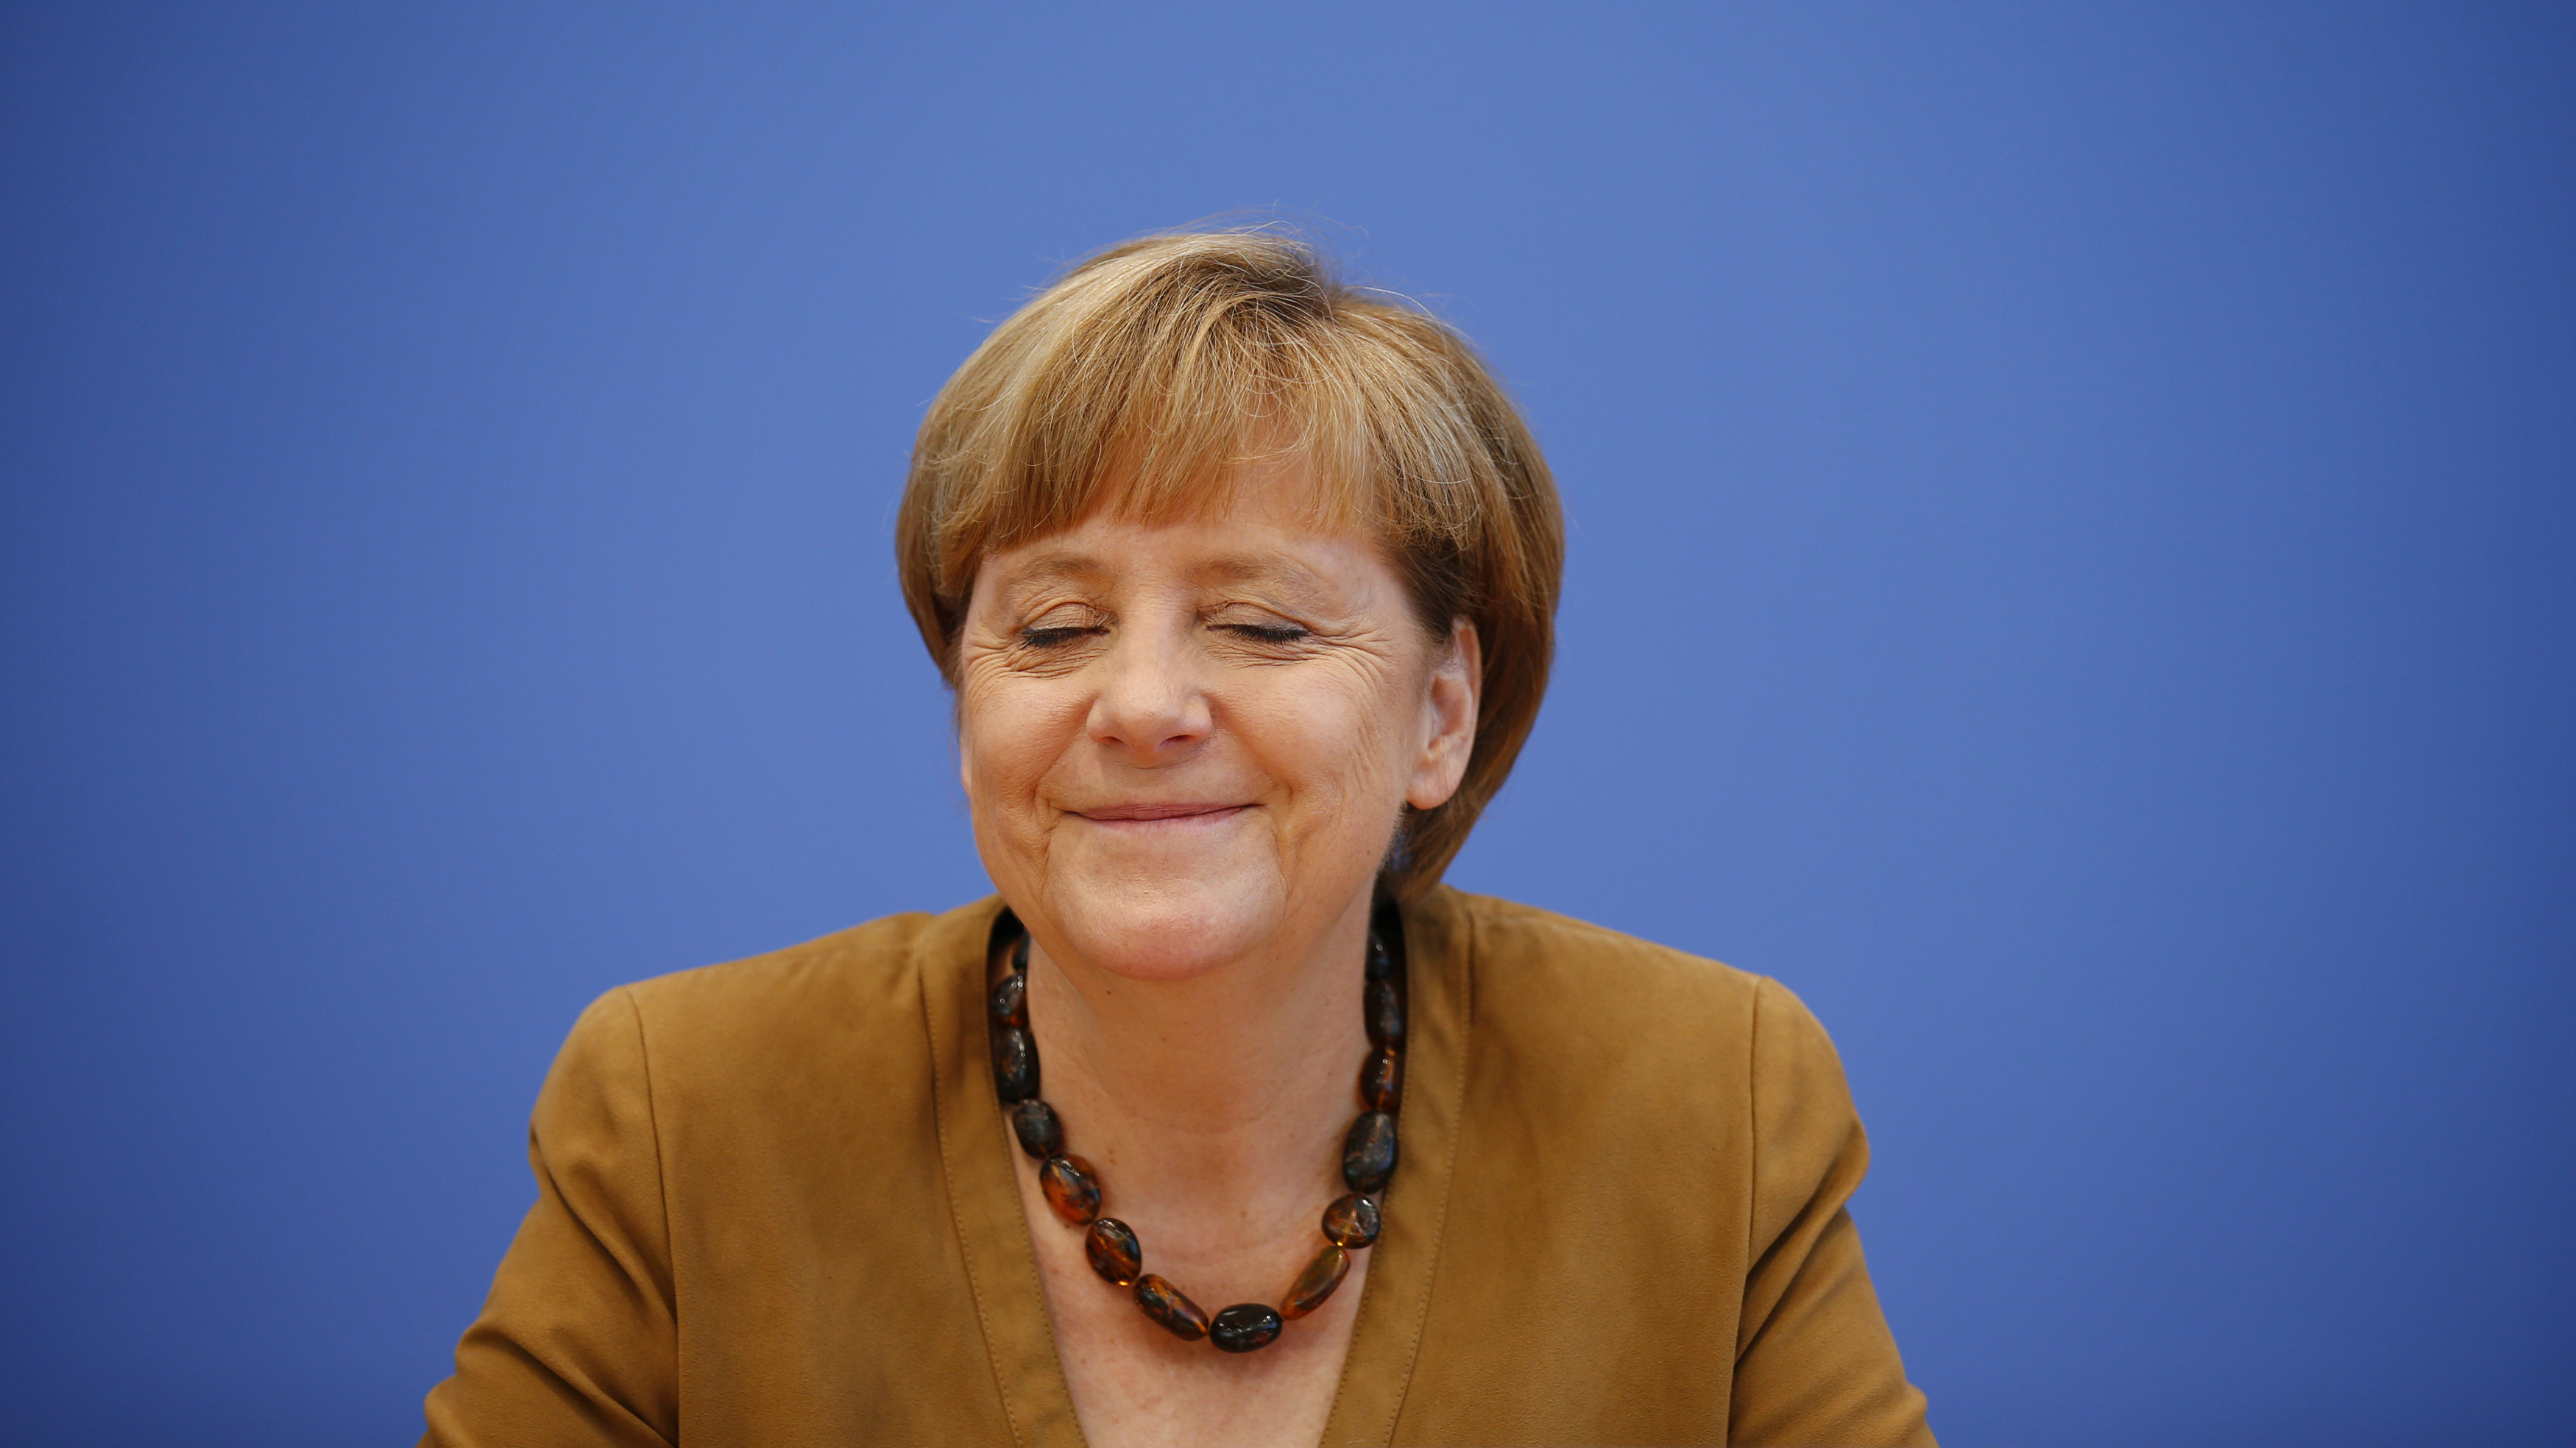 German Chancellor Angela Merkel smiles during a news conference in Berlin, July 18, 2014. REUTERS/Thomas Peter (GERMANY - Tags: POLITICS)